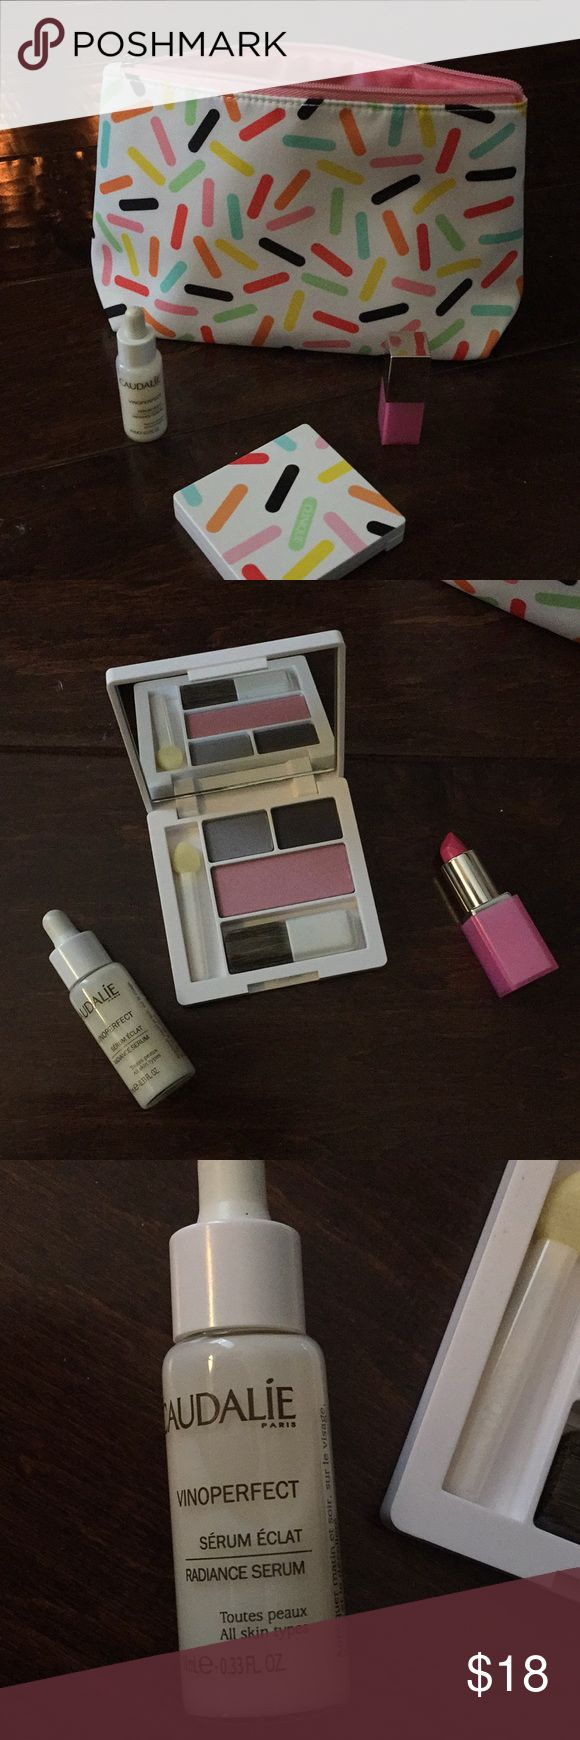 Clinique and Caudalie 💗 Clinique Cx grey matters eyeshadow, 14 iced lotus blush, Bubblegum pop lipstick and Caudalie Vinoperfect serum.... New w/o tags 💗🌺🌸 also make bag included Clinique Makeup